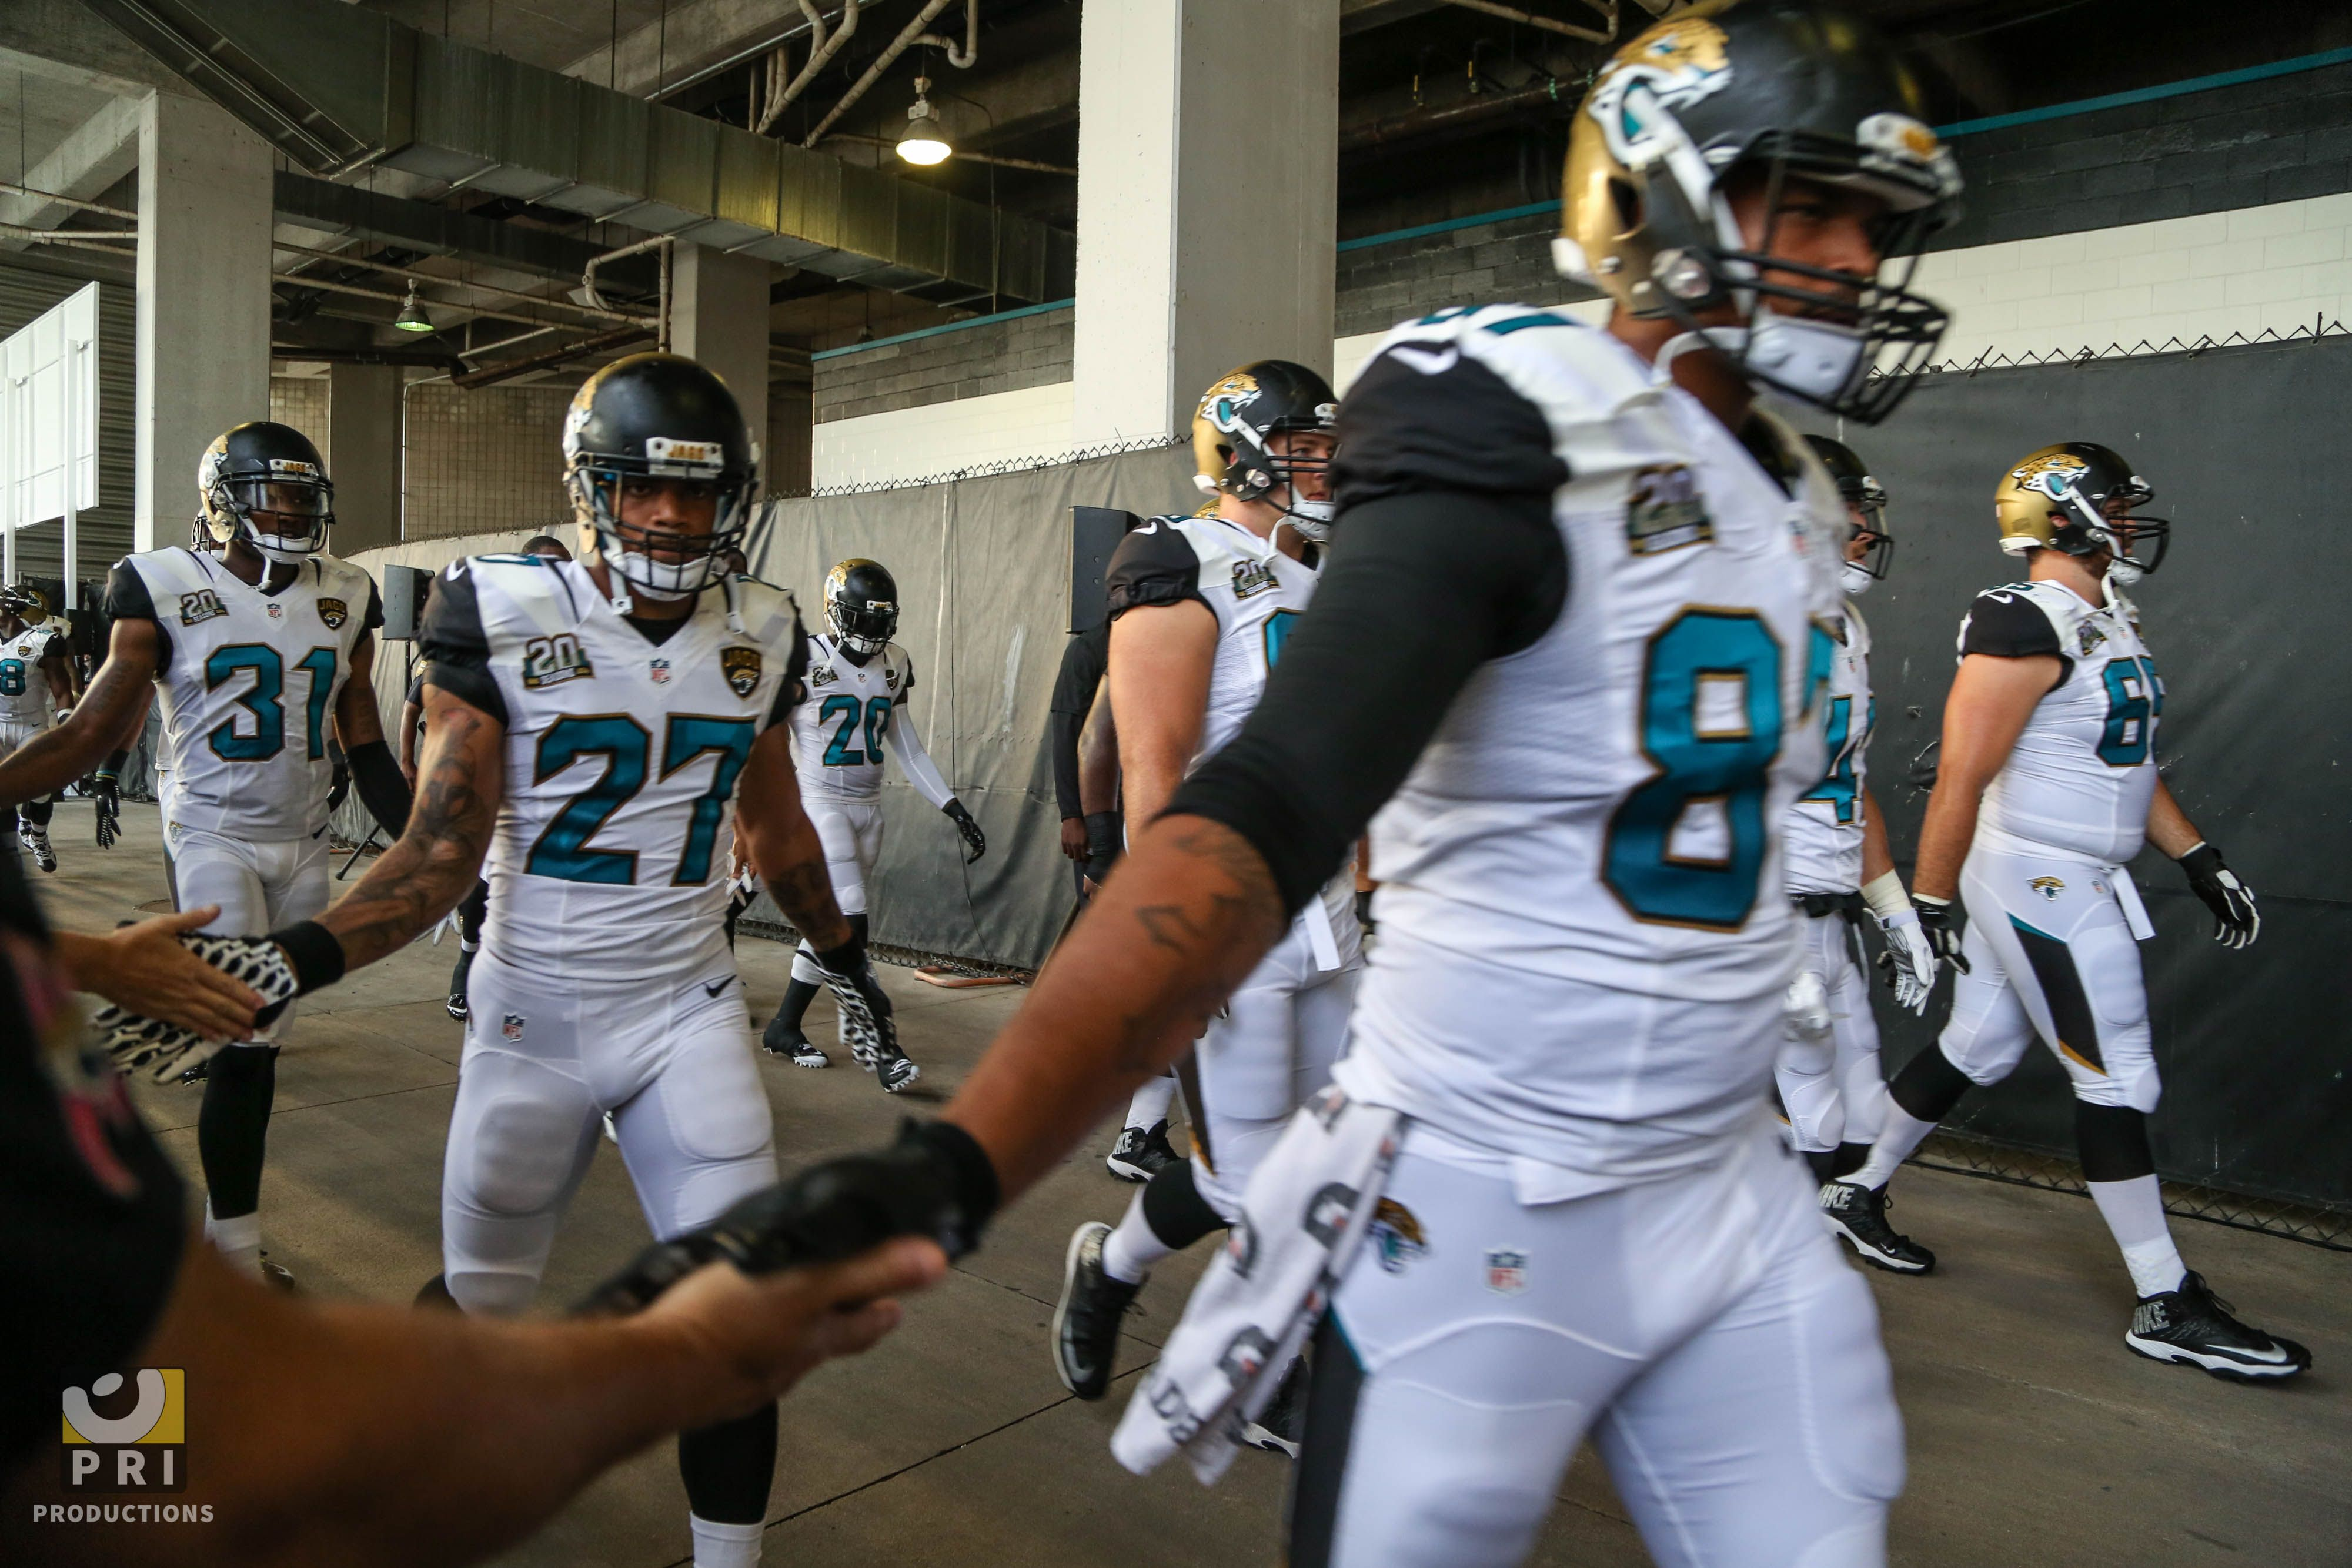 The Prowl Jags About To Take On Tampa Bay Jaguars Standunited Nfl Jacksonville Jacksonville Jaguars Tampa Bay